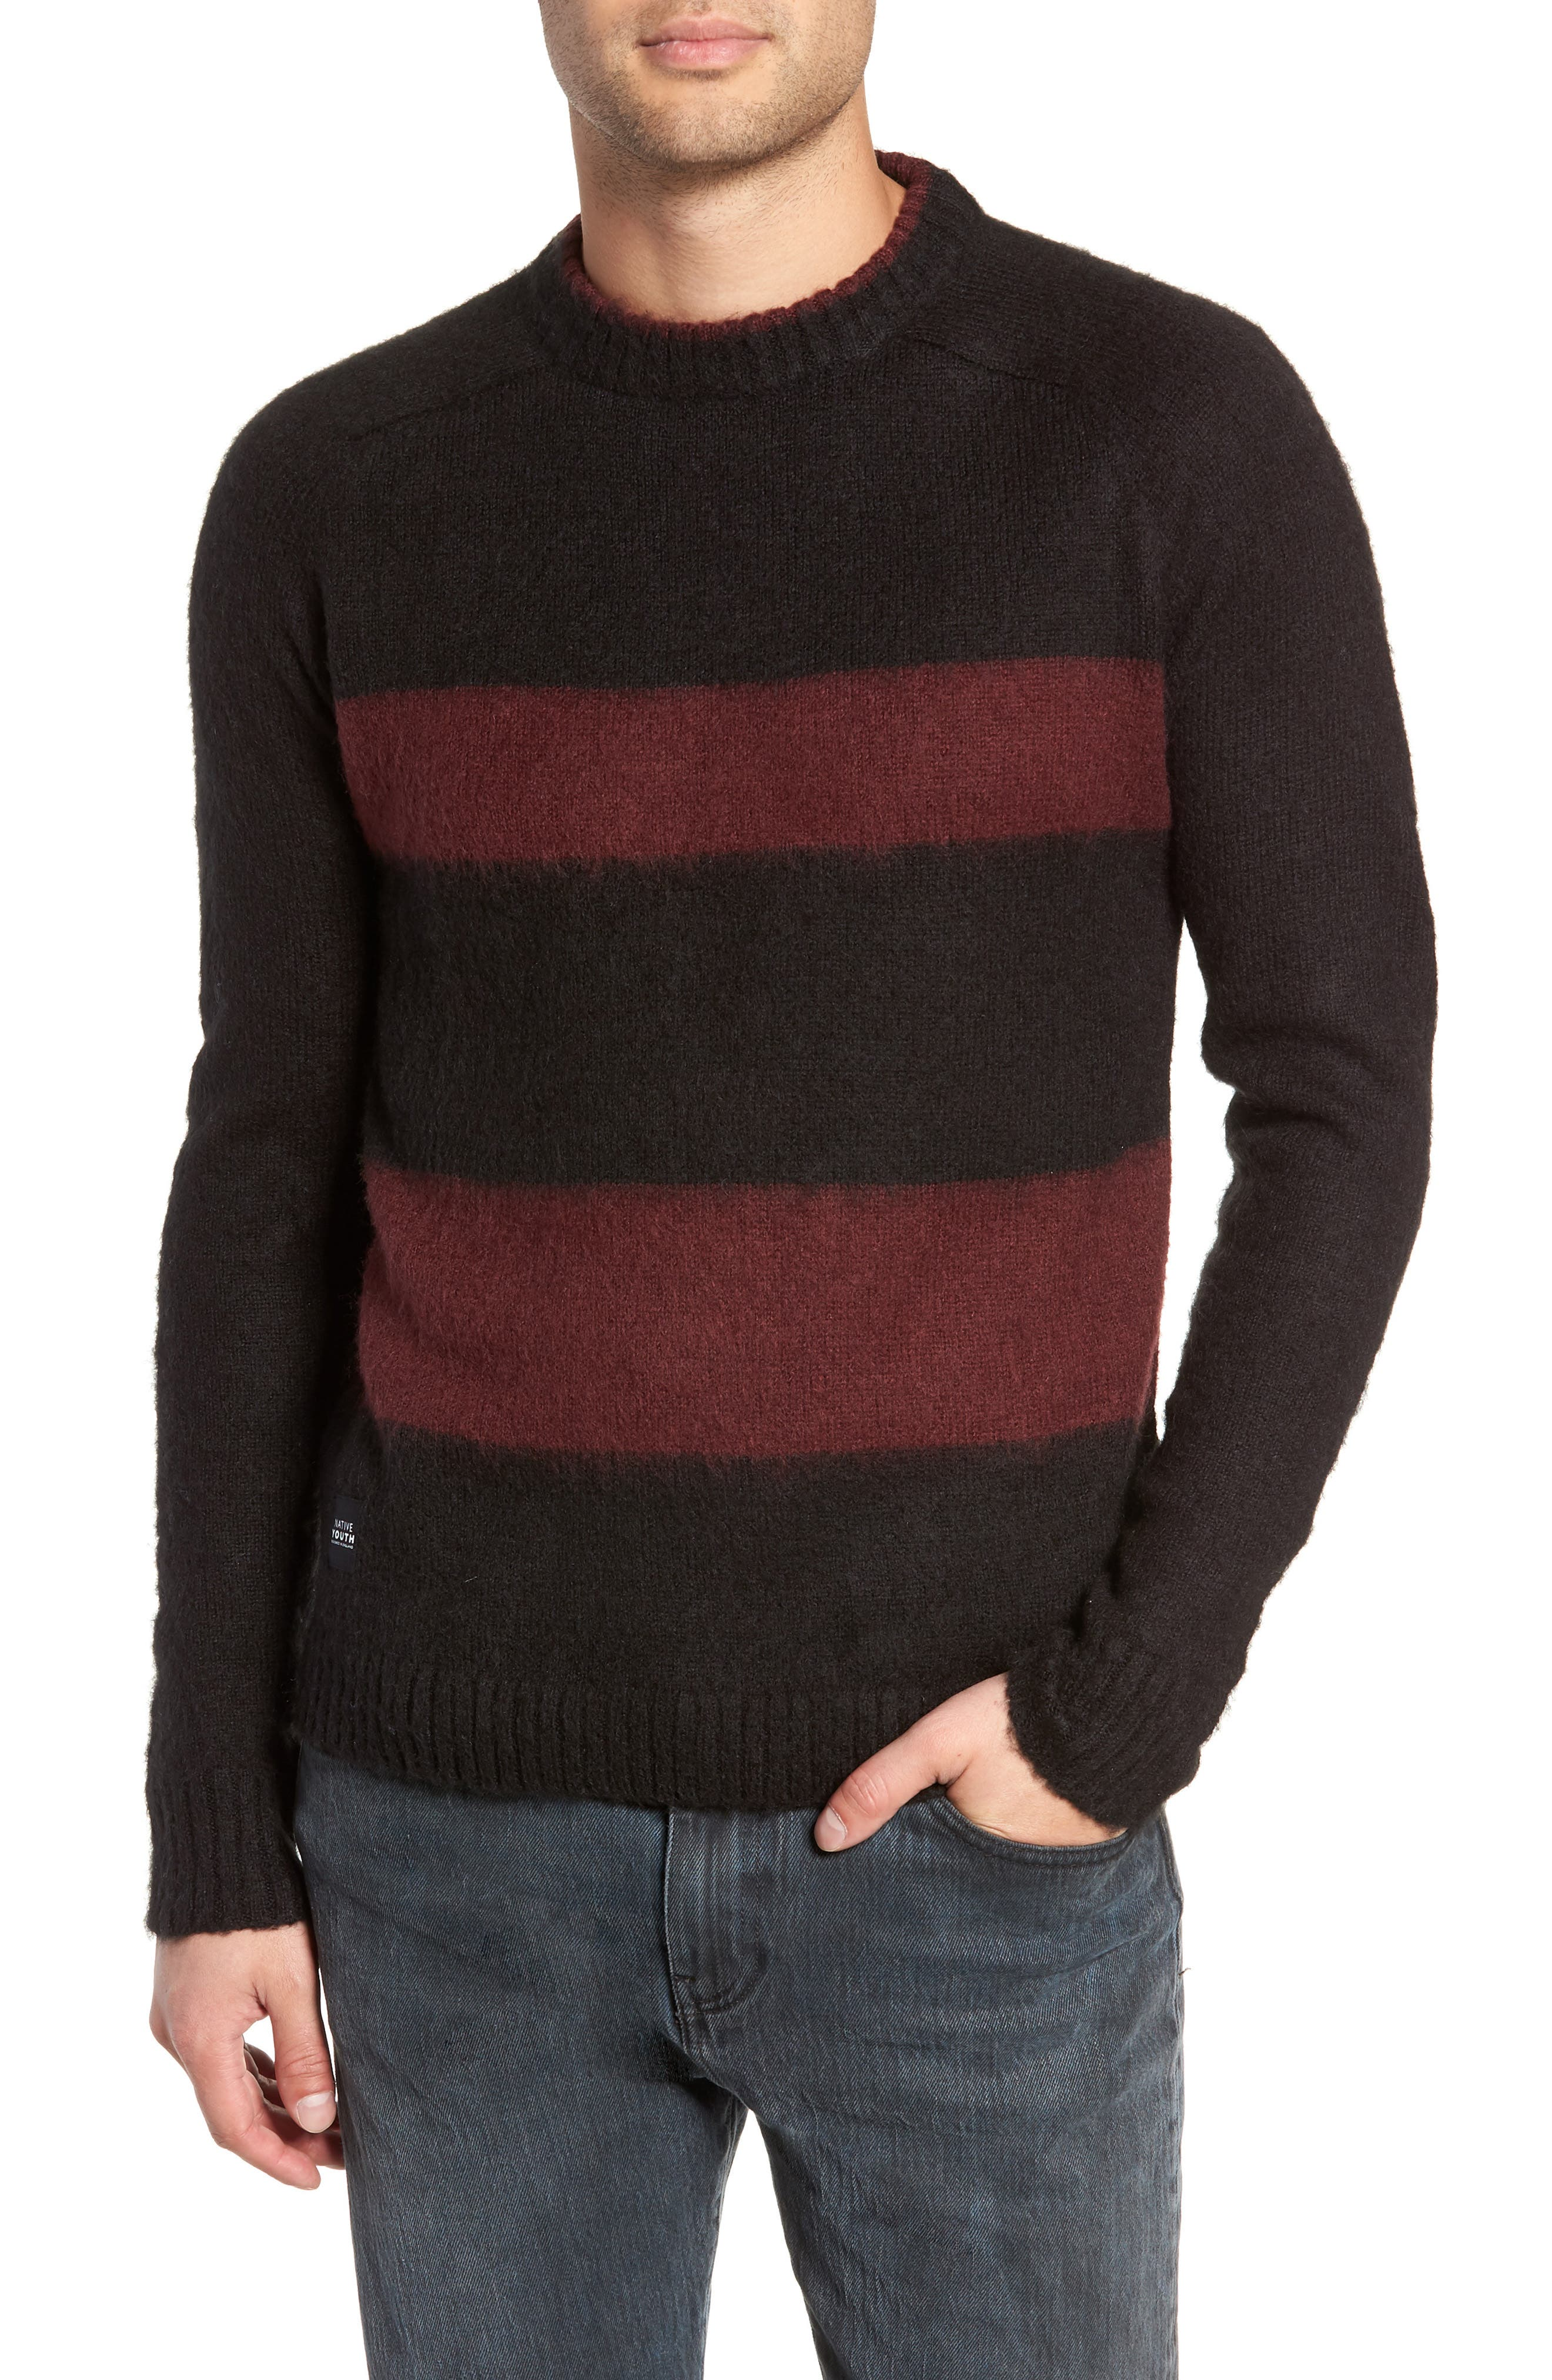 NATIVE YOUTH Colorblock Sweater in Black